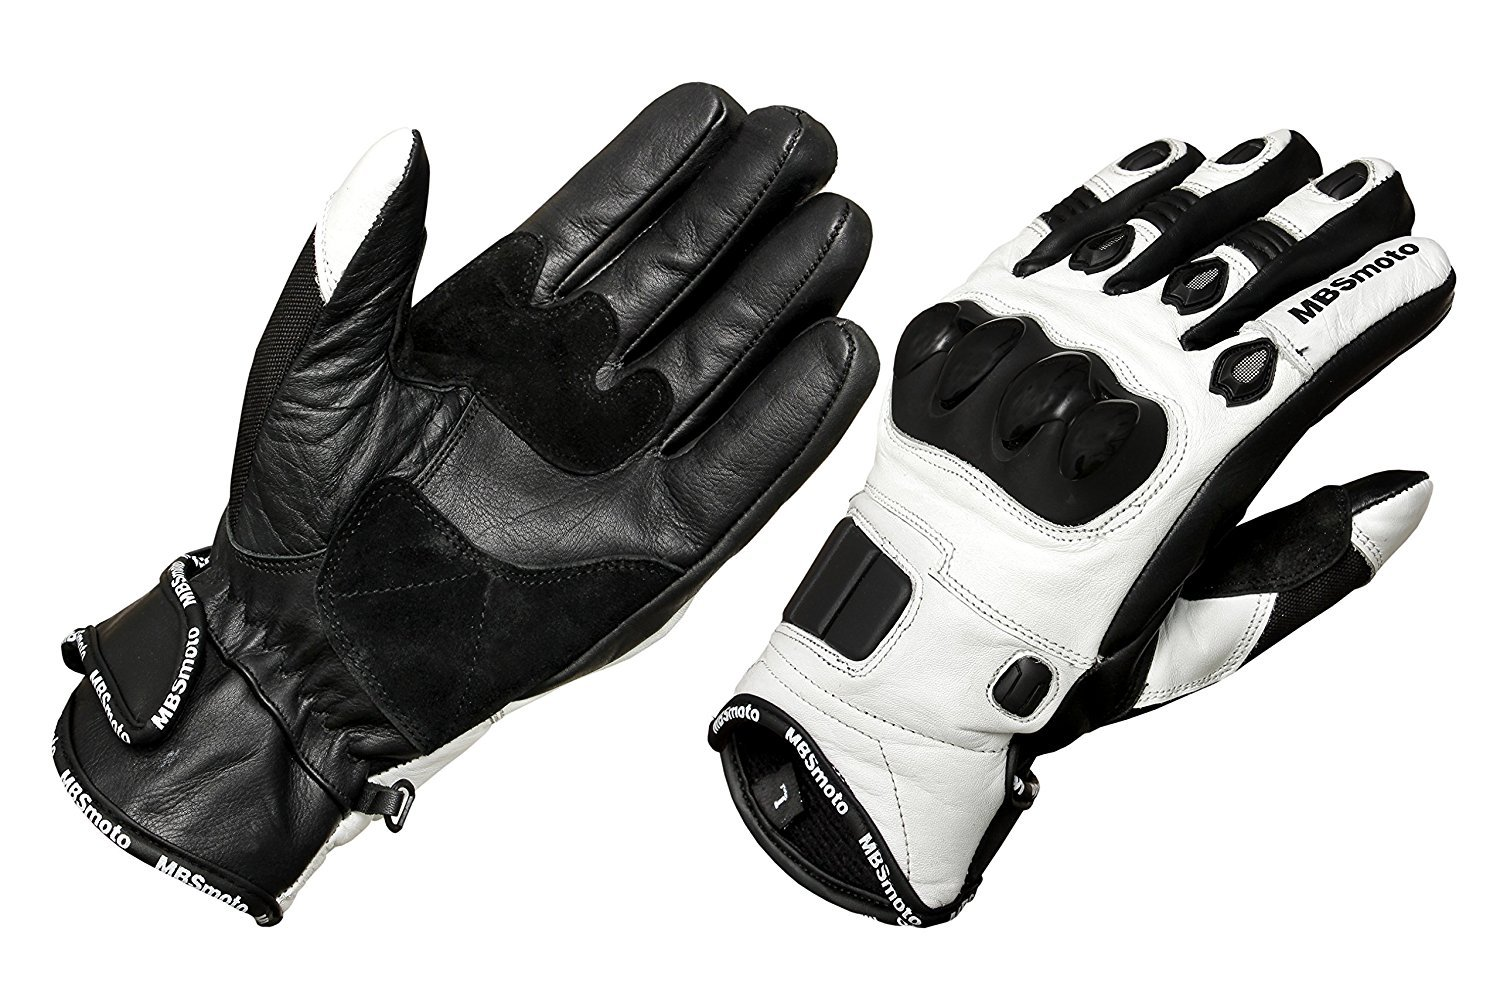 MBSmoto Motorcycle Bike Sports Cruiser Protective Leather Gloves